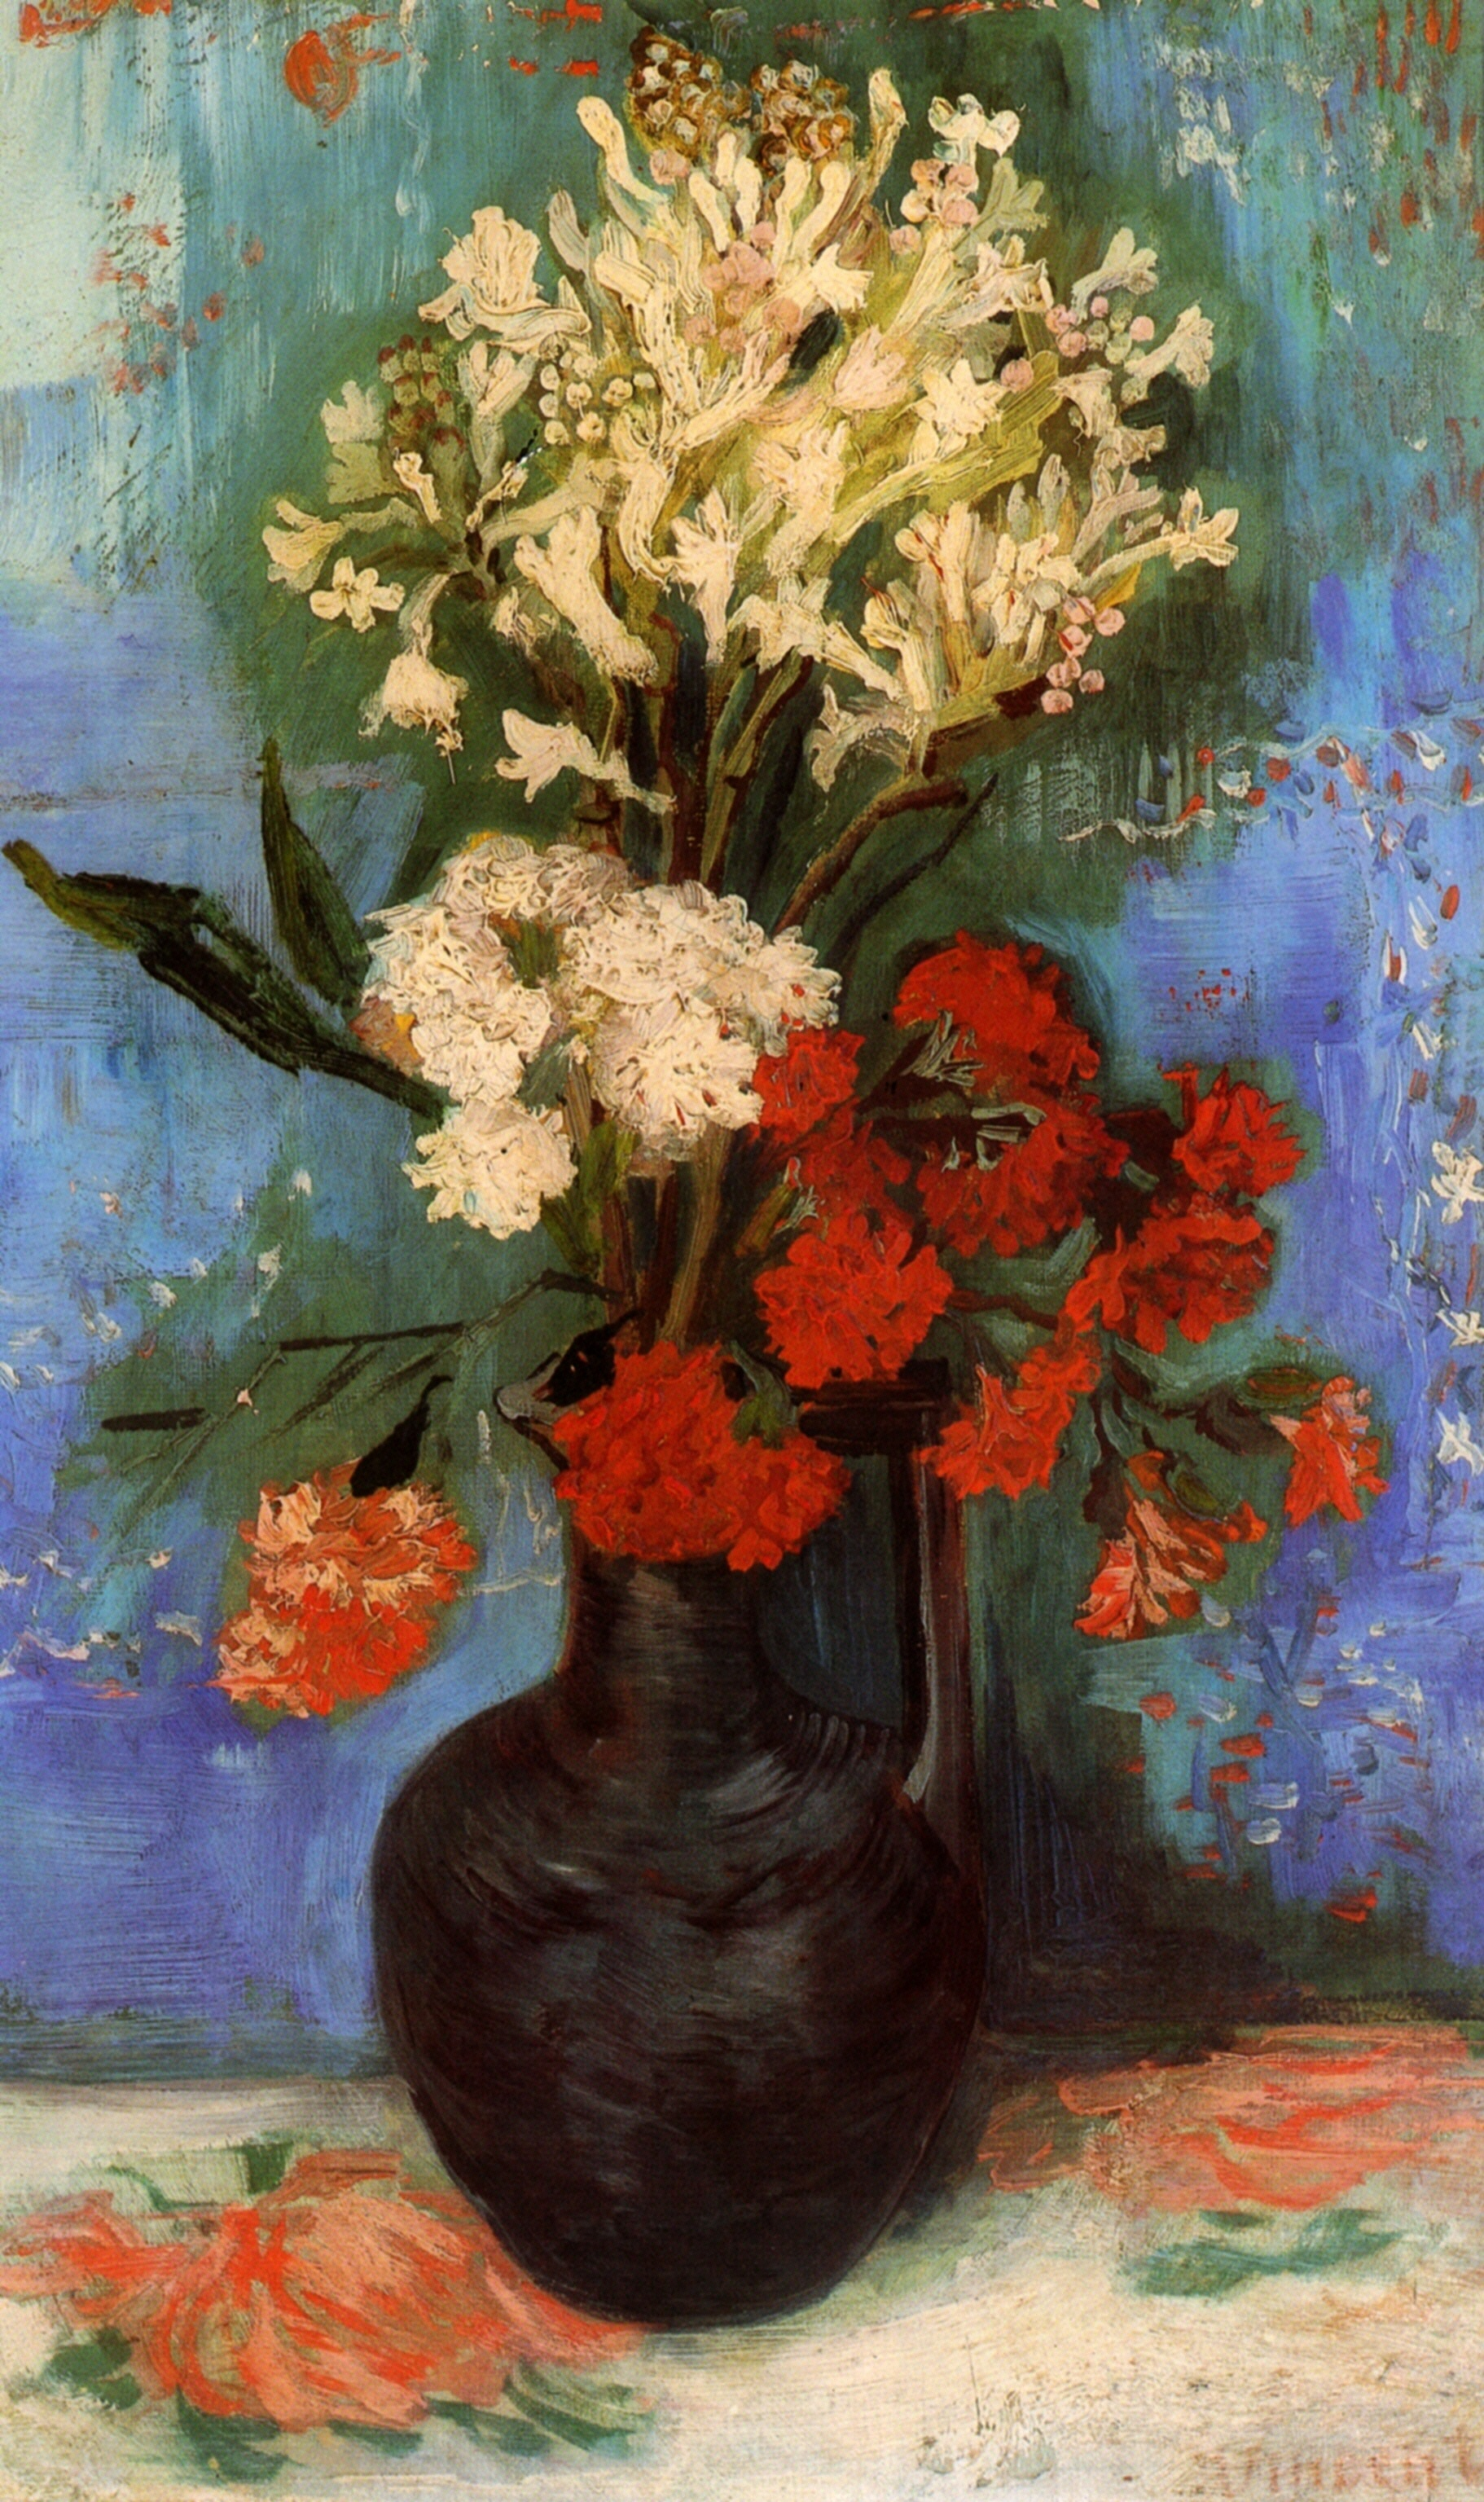 Vase with Carnations and Other Flowers van Gogh Vincent WikiArt